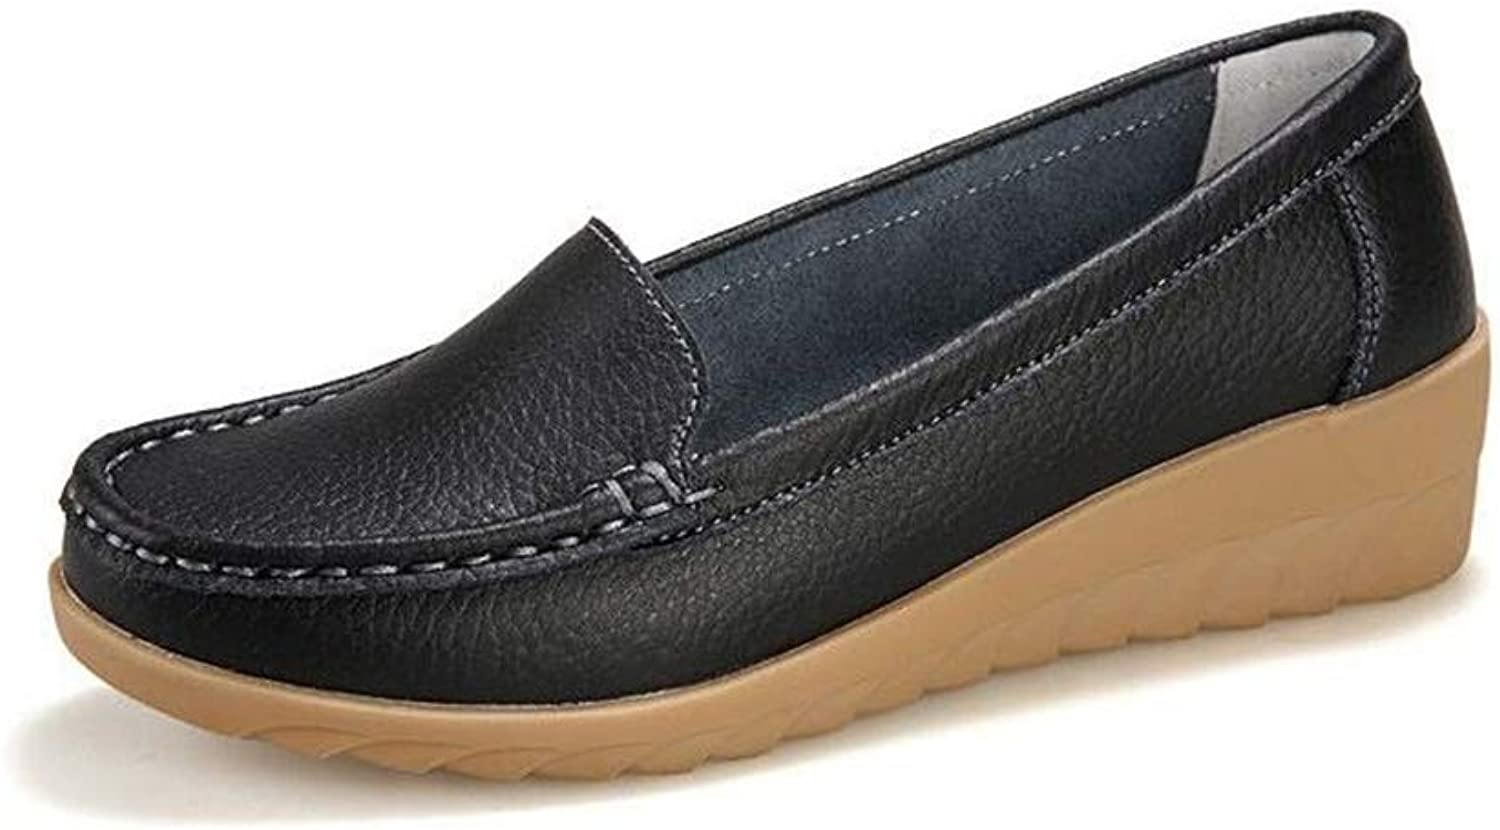 Women's Leather Loafers Casual Flats Driving Moccasins Indoor shoes Slip-On Slippers